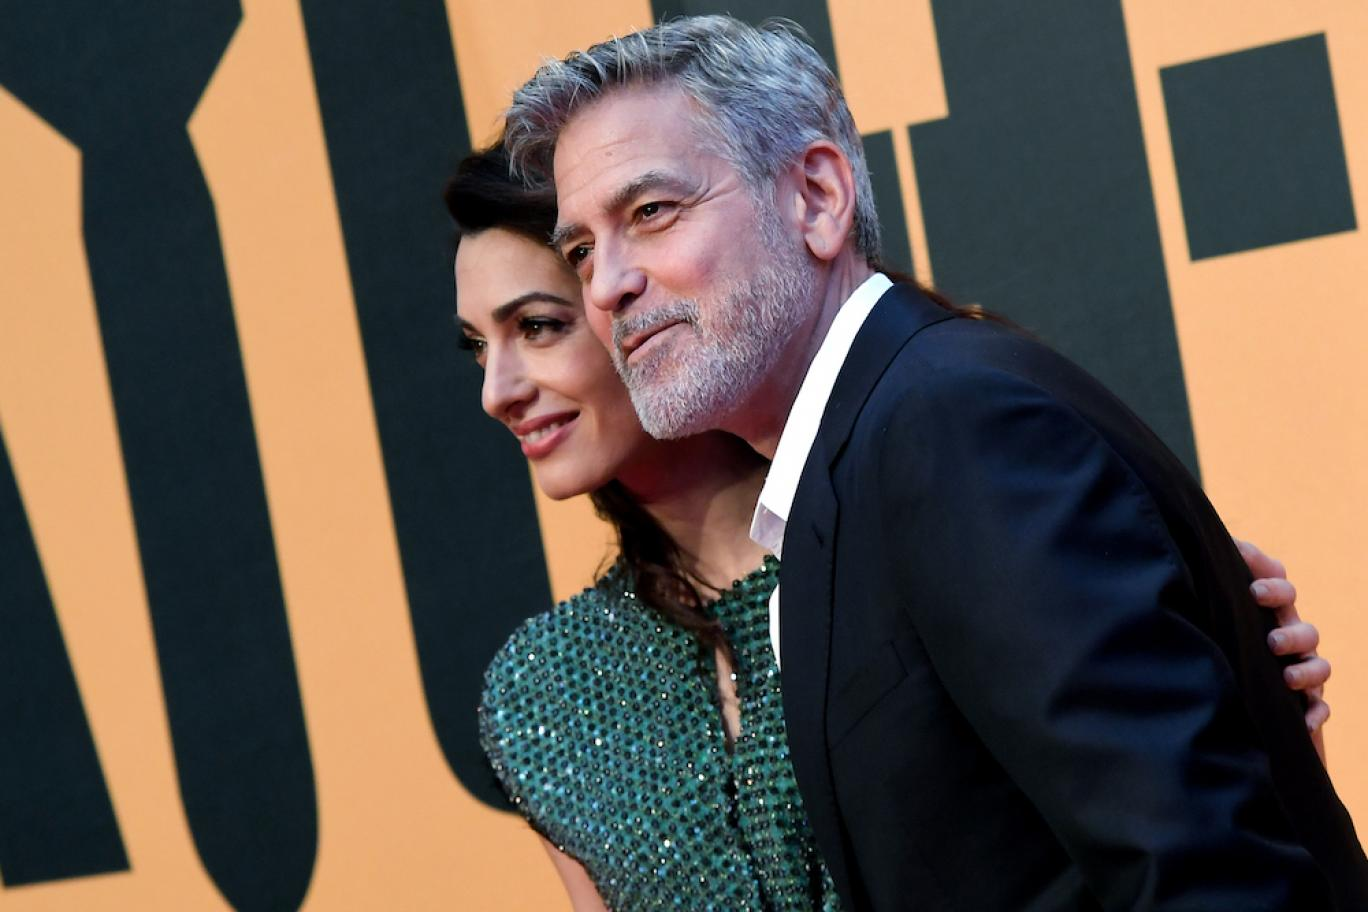 George and Amal Clooney meet their supportive couple in Italy